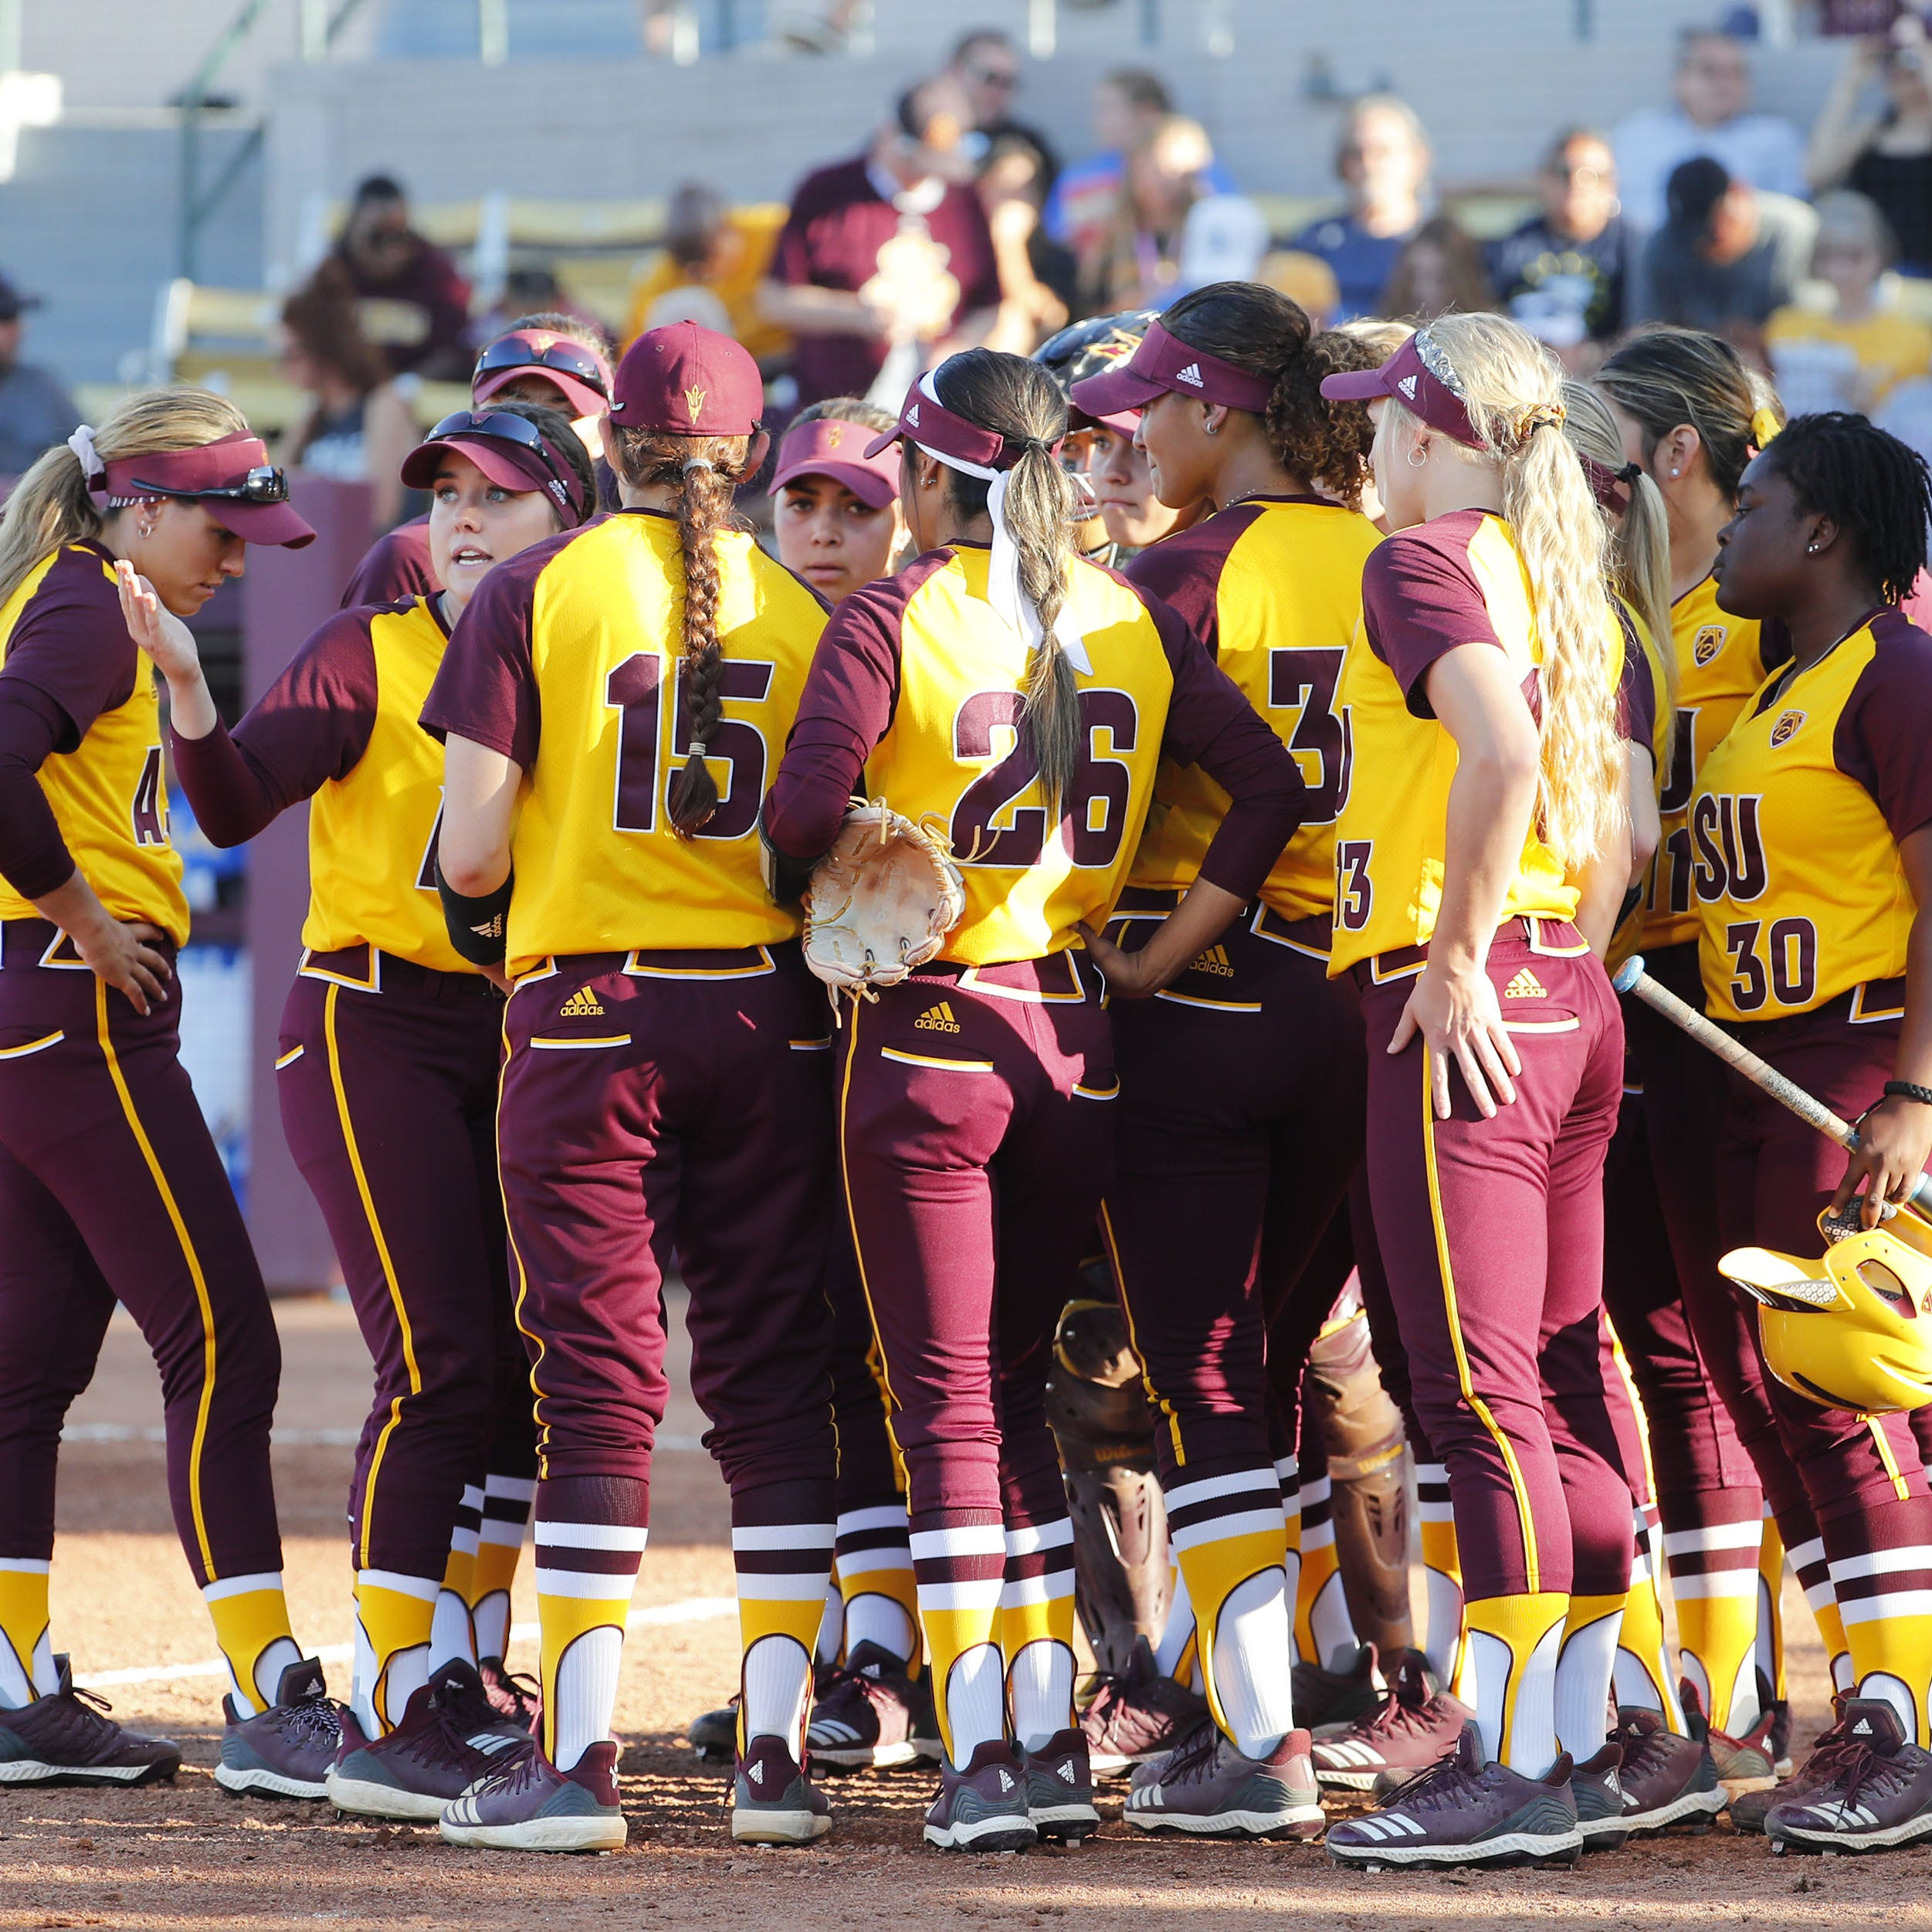 ASU softball makes 15th straight NCAA Tournament, heads to Alabama regional